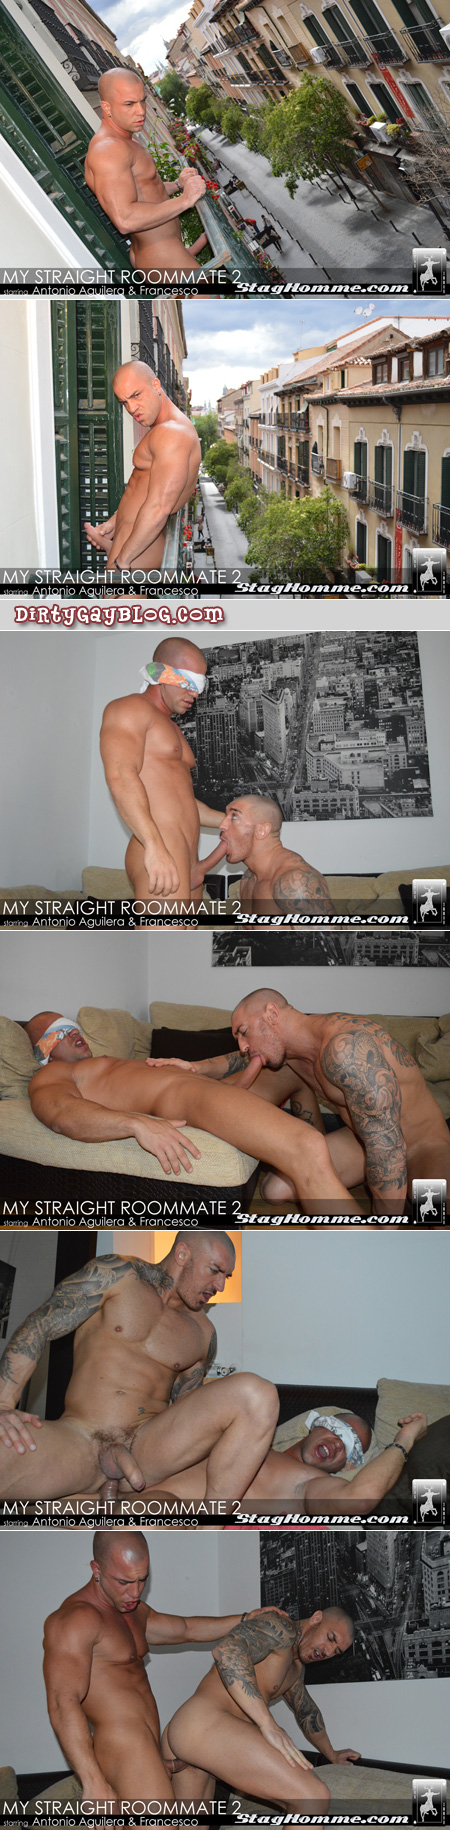 Muscular tattooed man sucks off and gets fucked by his hung, straight roommate